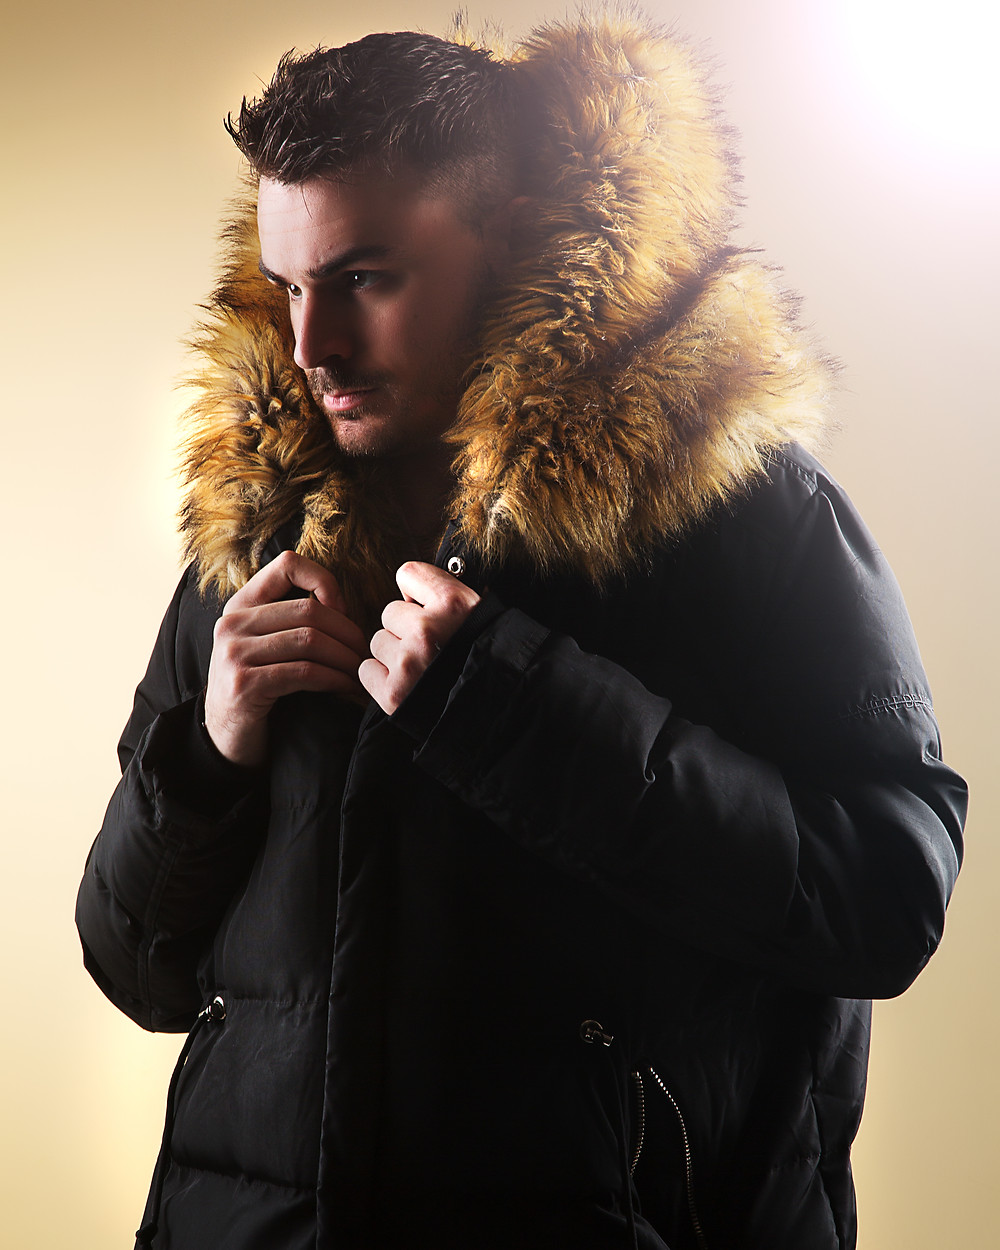 Professional portrait of man in a big hooded coat